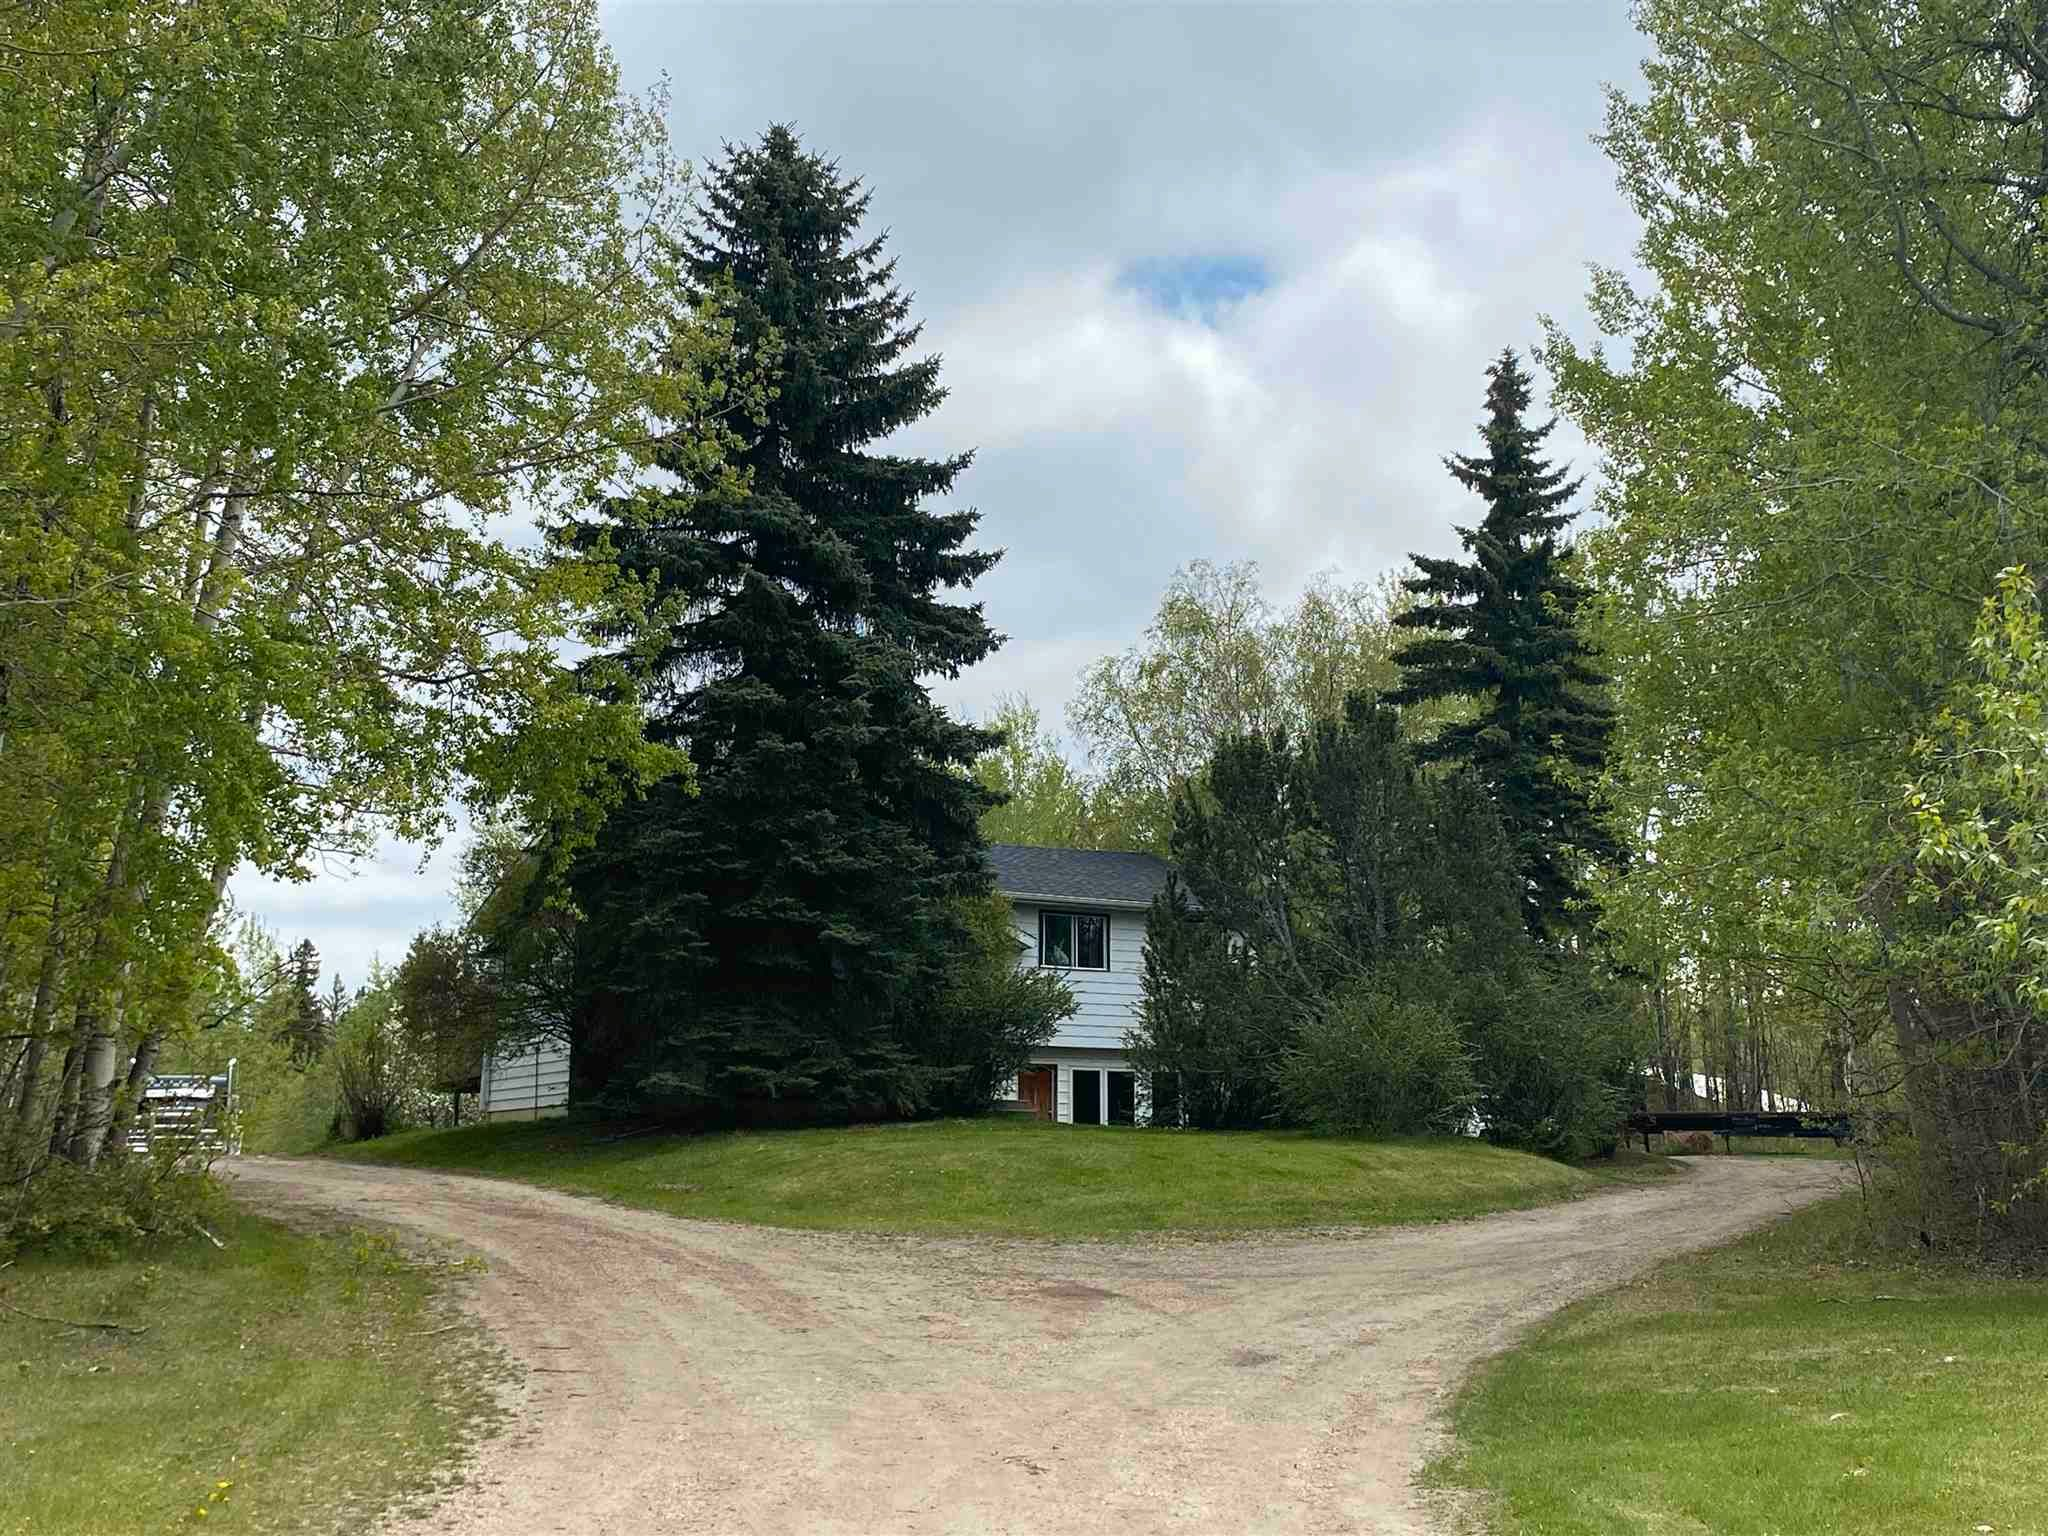 Main Photo: 124, 53510 HWY 43: Rural Lac Ste. Anne County House for sale : MLS®# E4248793